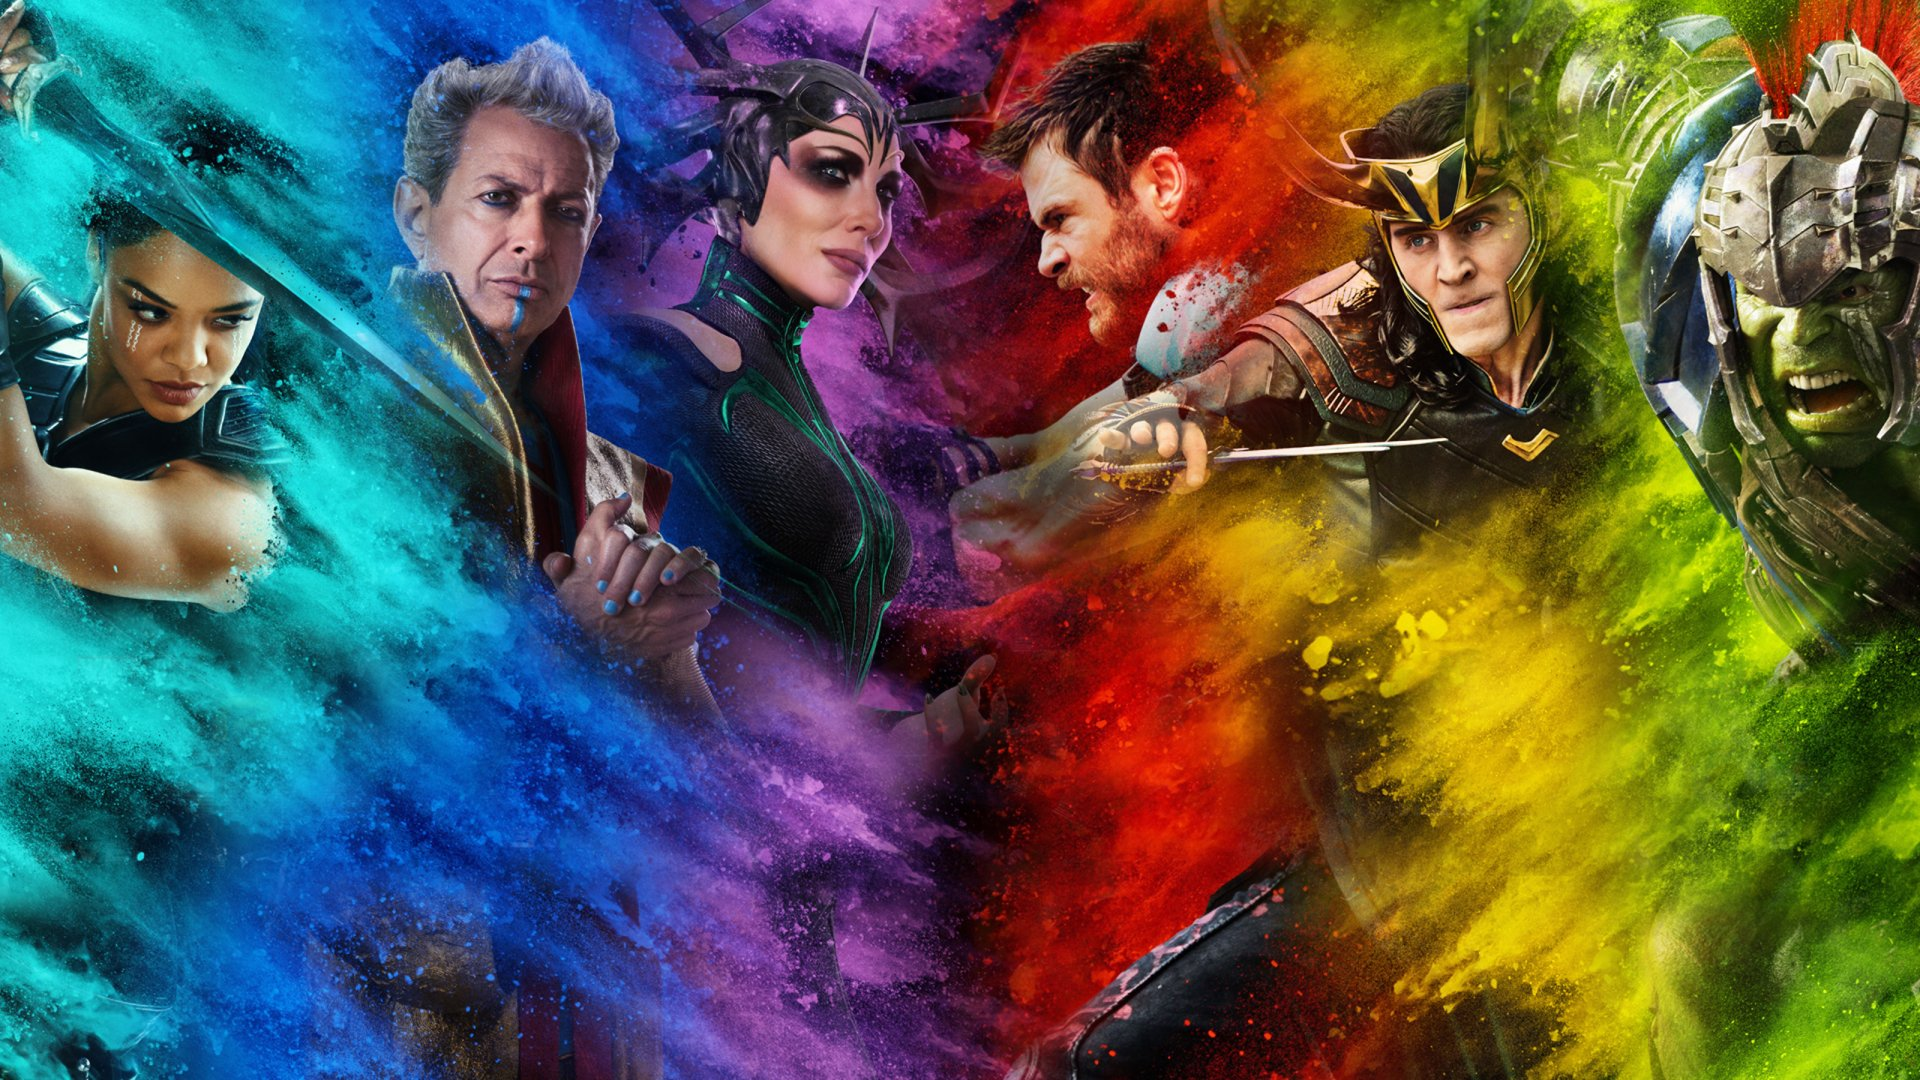 Movie - Thor: Ragnarok  Valkyrie (Marvel Comics) Tessa Thompson Hela (Marvel Comics) Cate Blanchett Grandmaster (Marvel Comics) Jeff Goldblum Thor Chris Hemsworth Loki Tom Hiddleston Hulk Mark Ruffalo Wallpaper